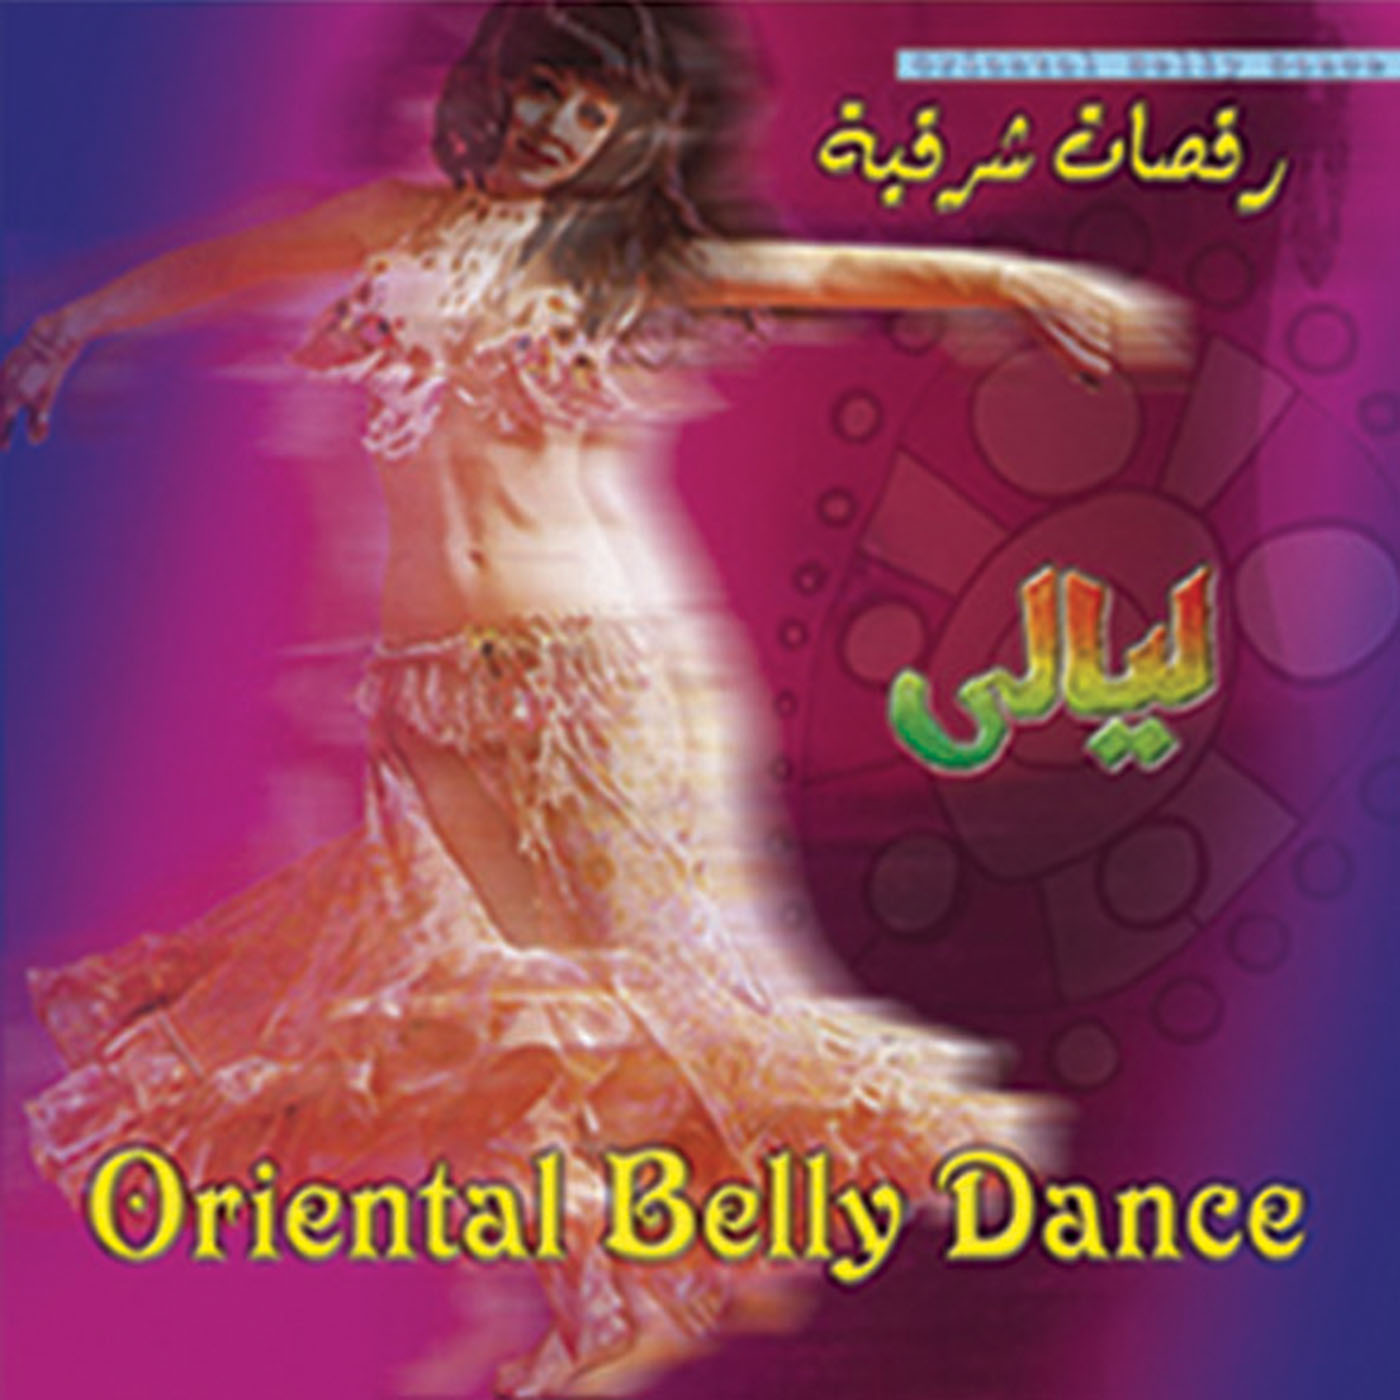 Oriental Belly Dance Laialy/  Ibrahim ElSmahey    BUY IT